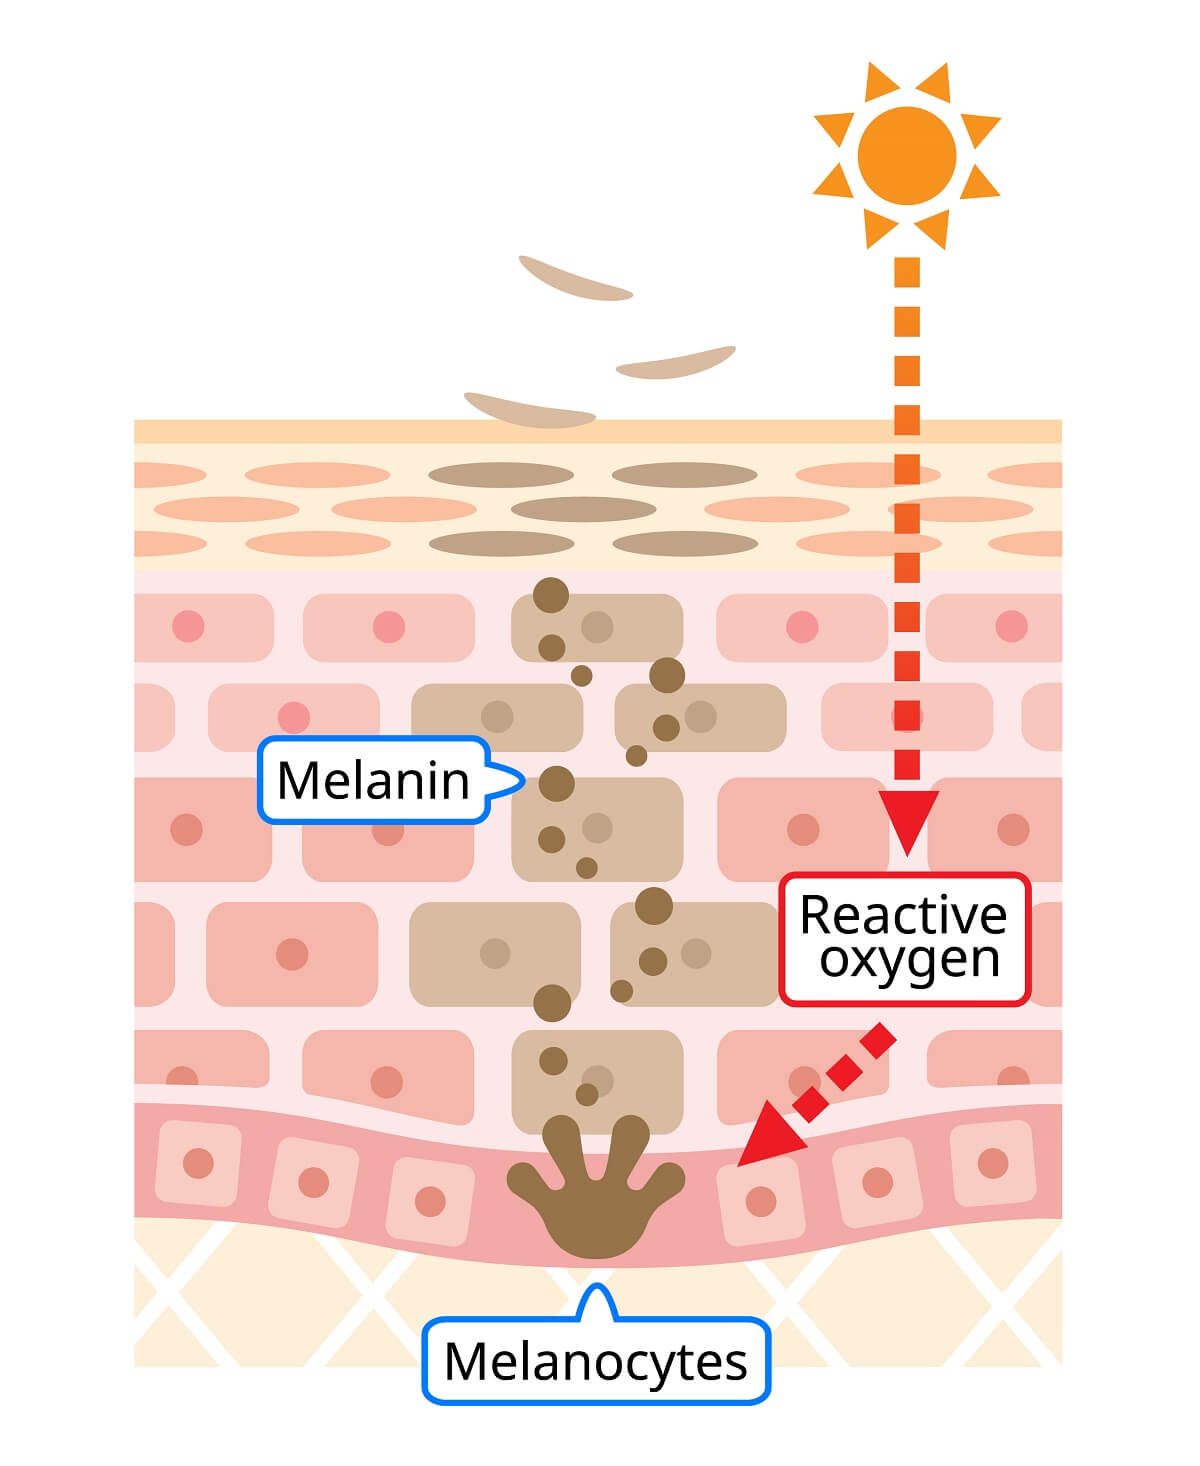 The process of tanning is caused by the release of melanin stimulated by UV light damage.